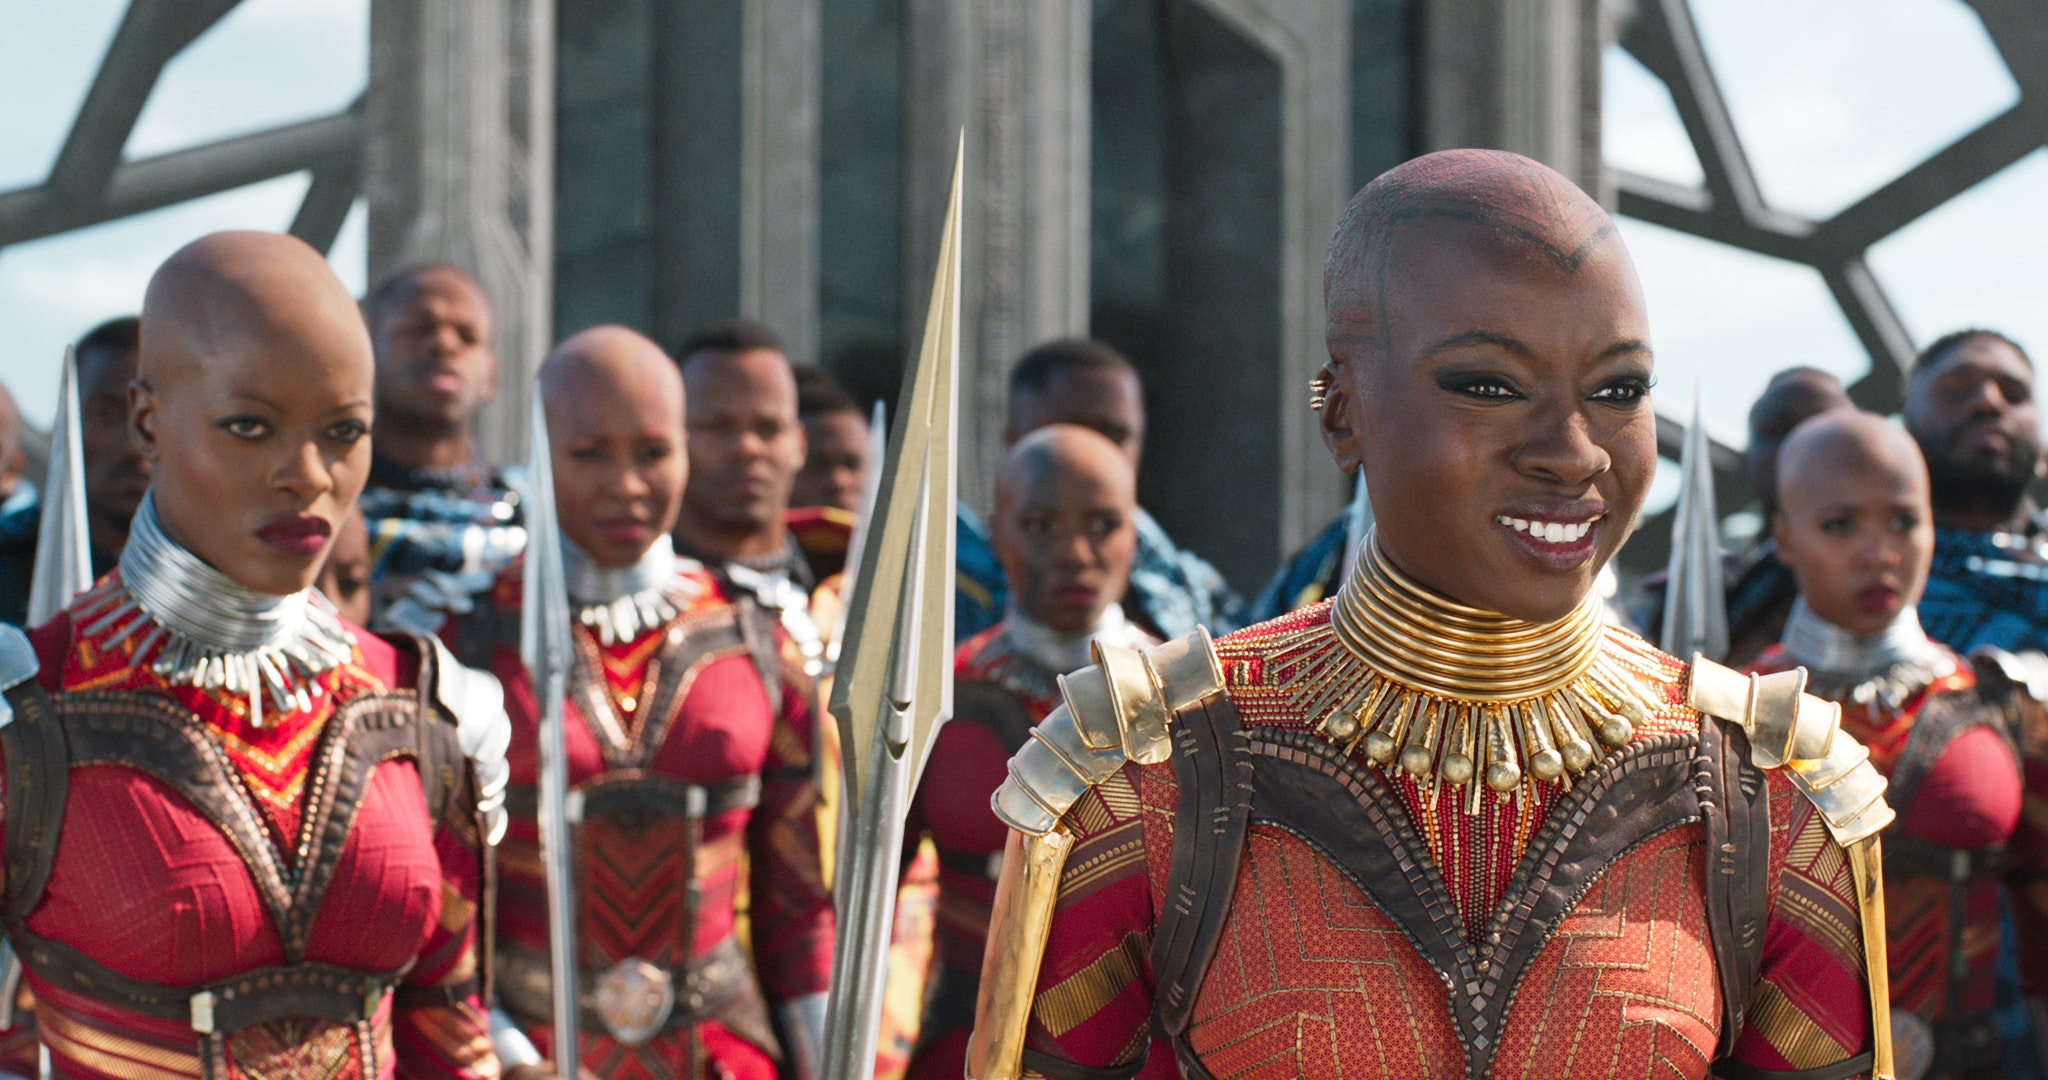 Role models: the women of Wakanda. Marvel Studios' BLACK PANTHER